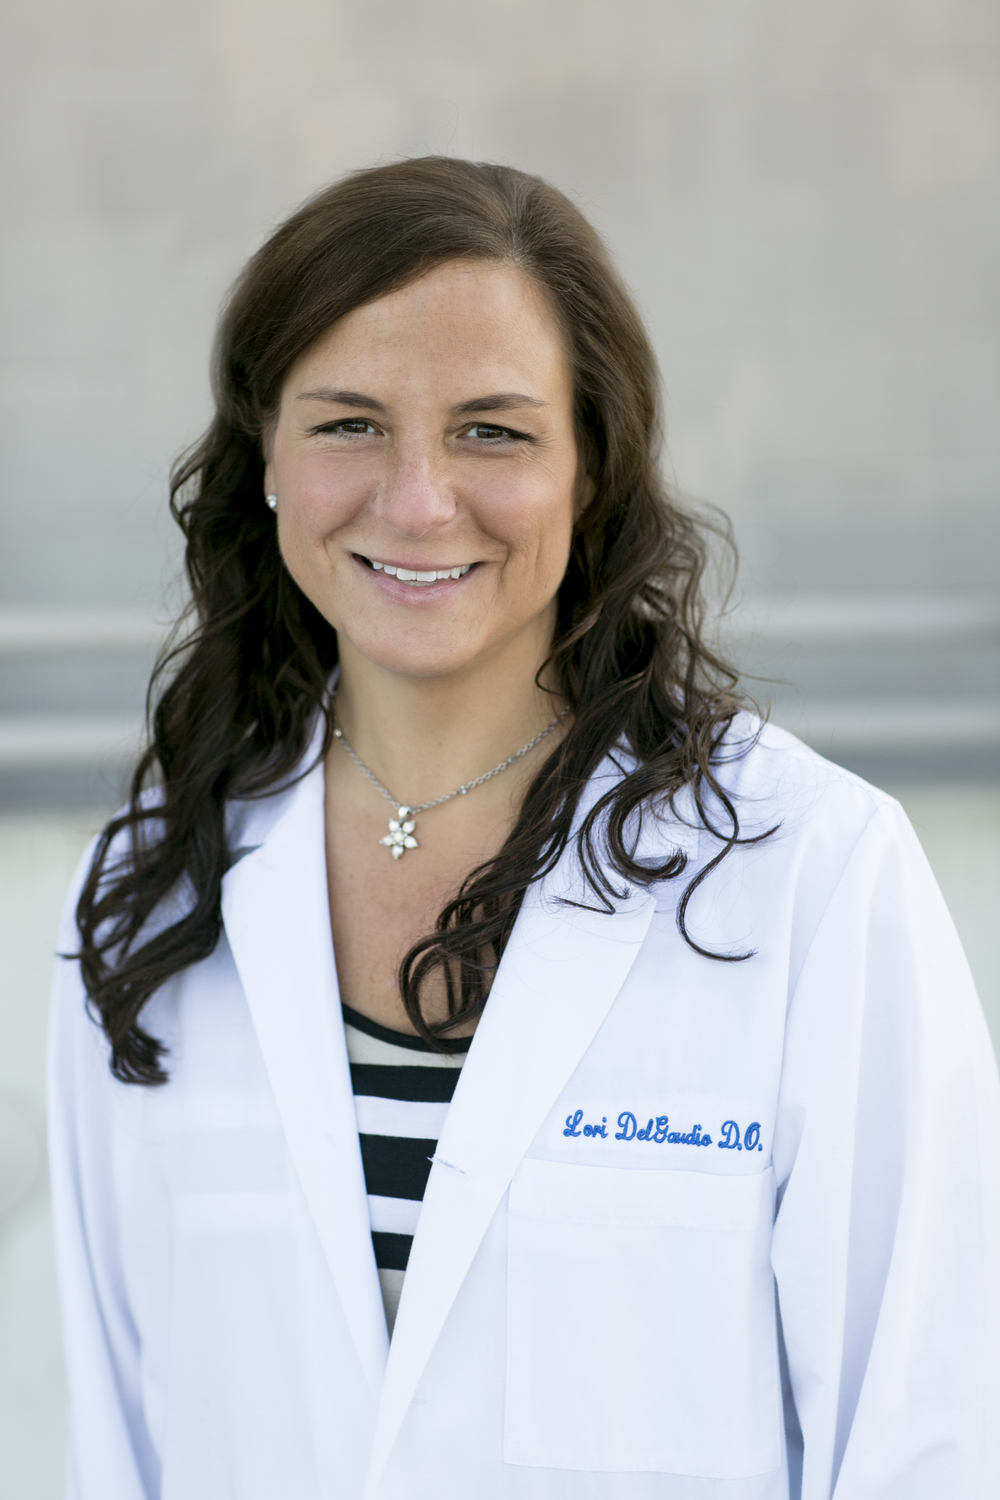 Dr. DelGaudio specializes in obstetrics and gynecology.